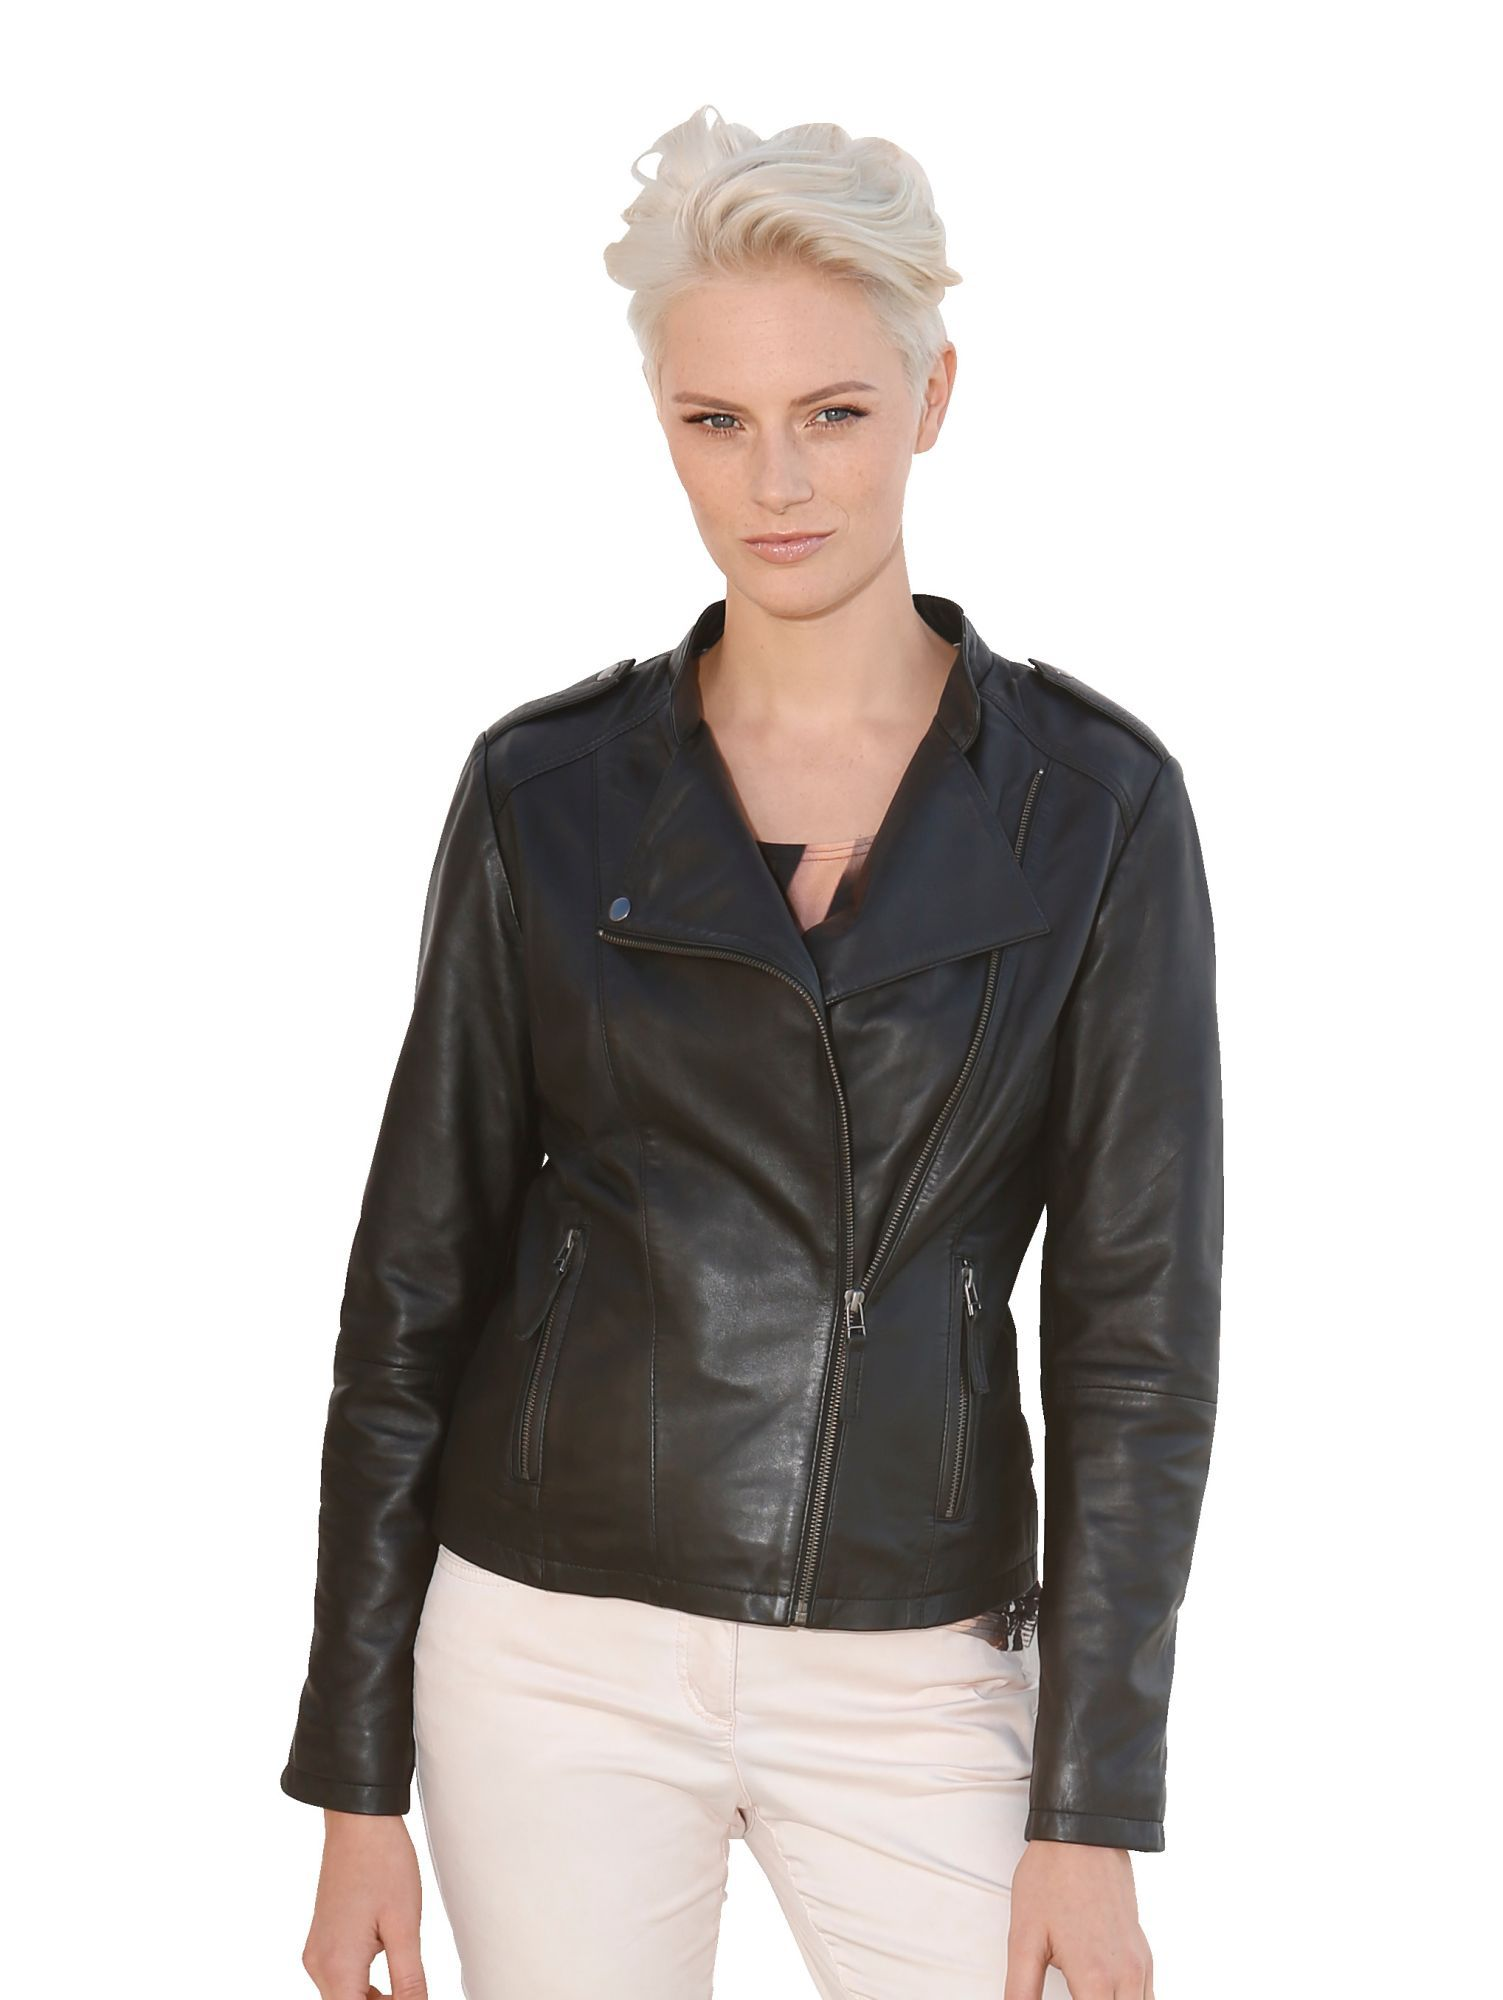 AMY VERMONT Amy Vermont Lederjacke in figurnaher Form